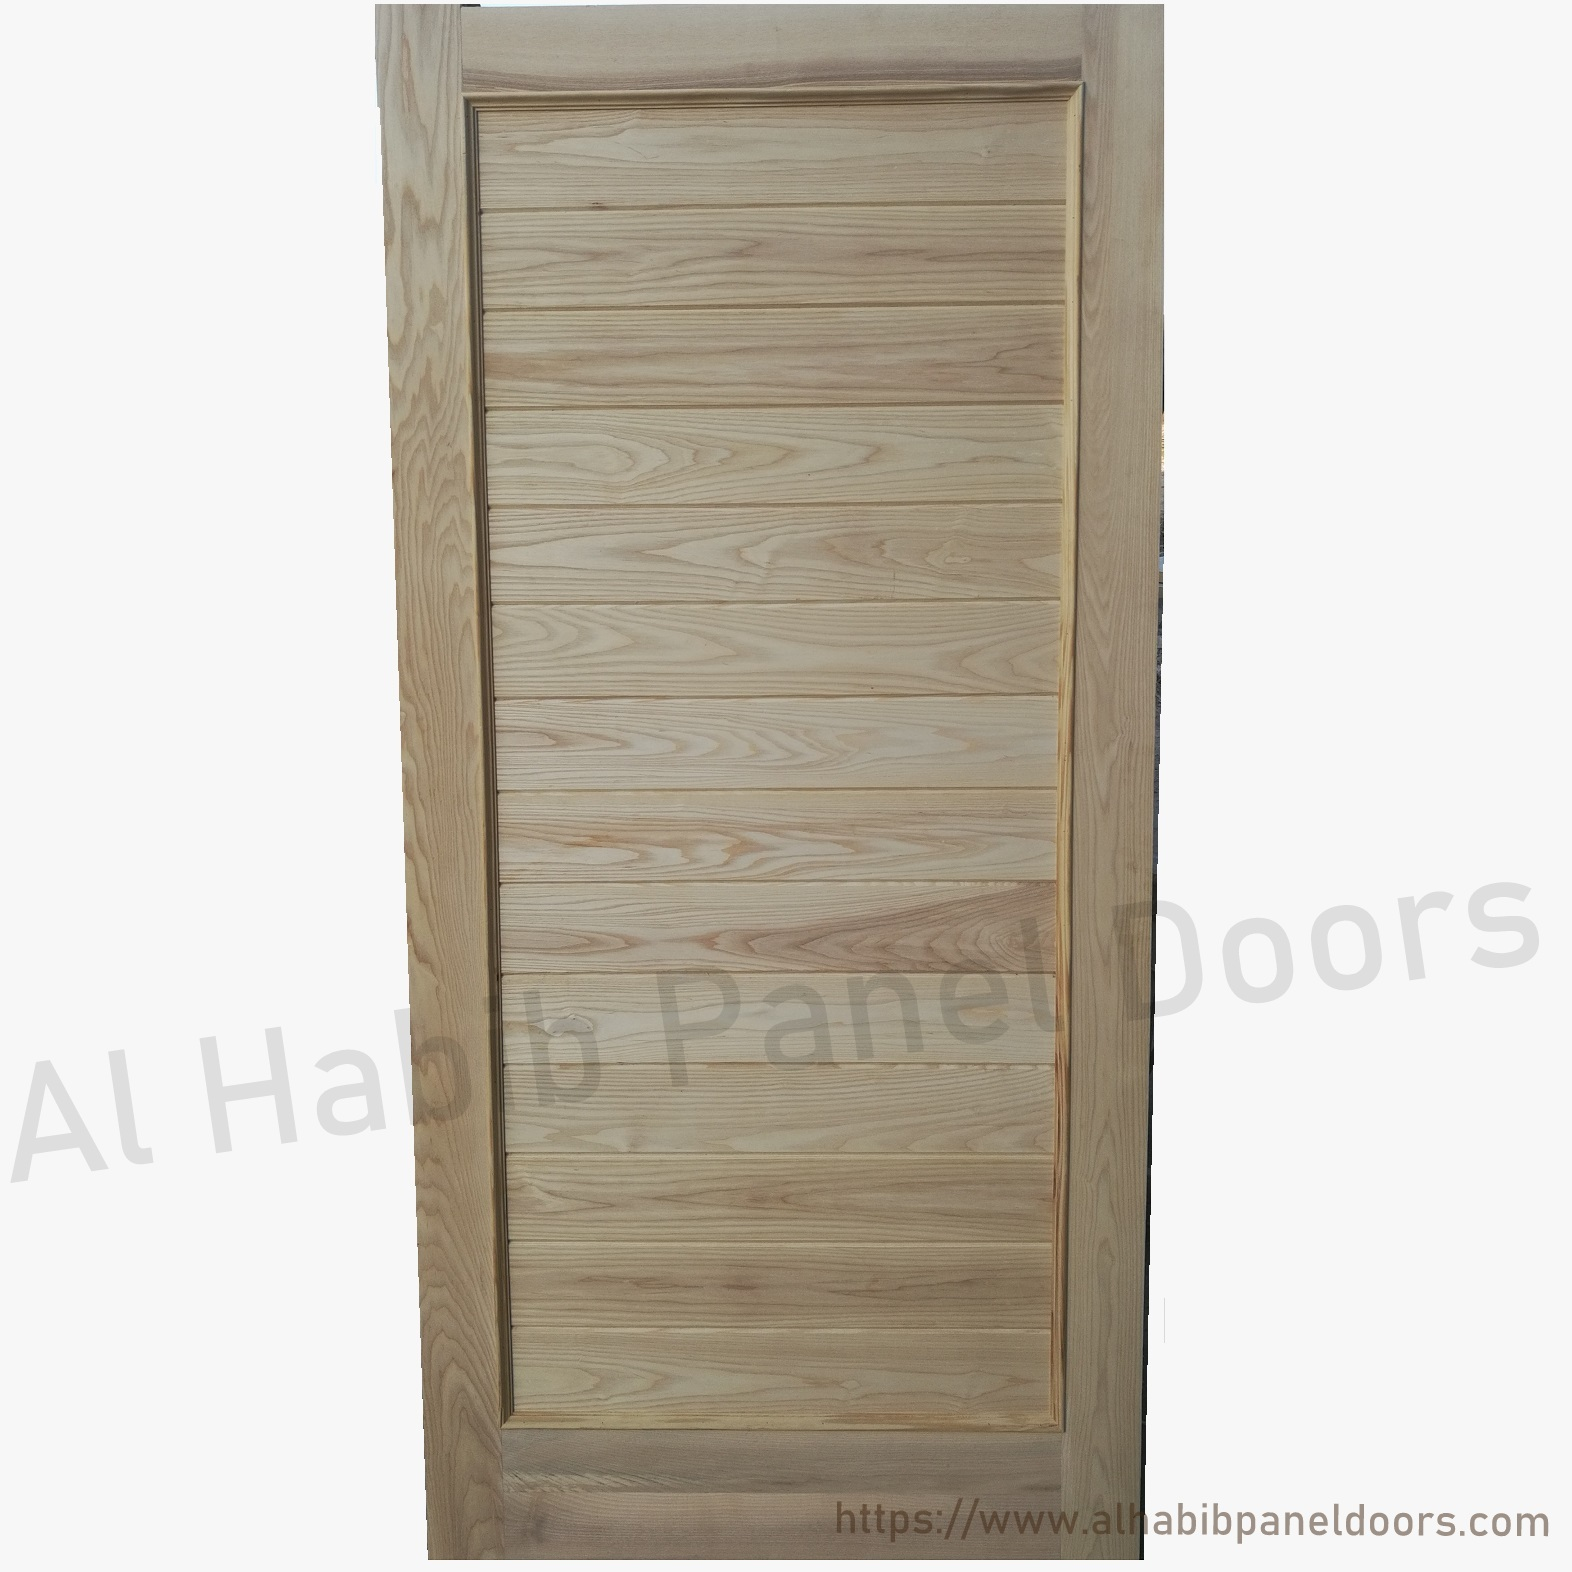 Solid wood doors doors al habib panel doors for Single door design